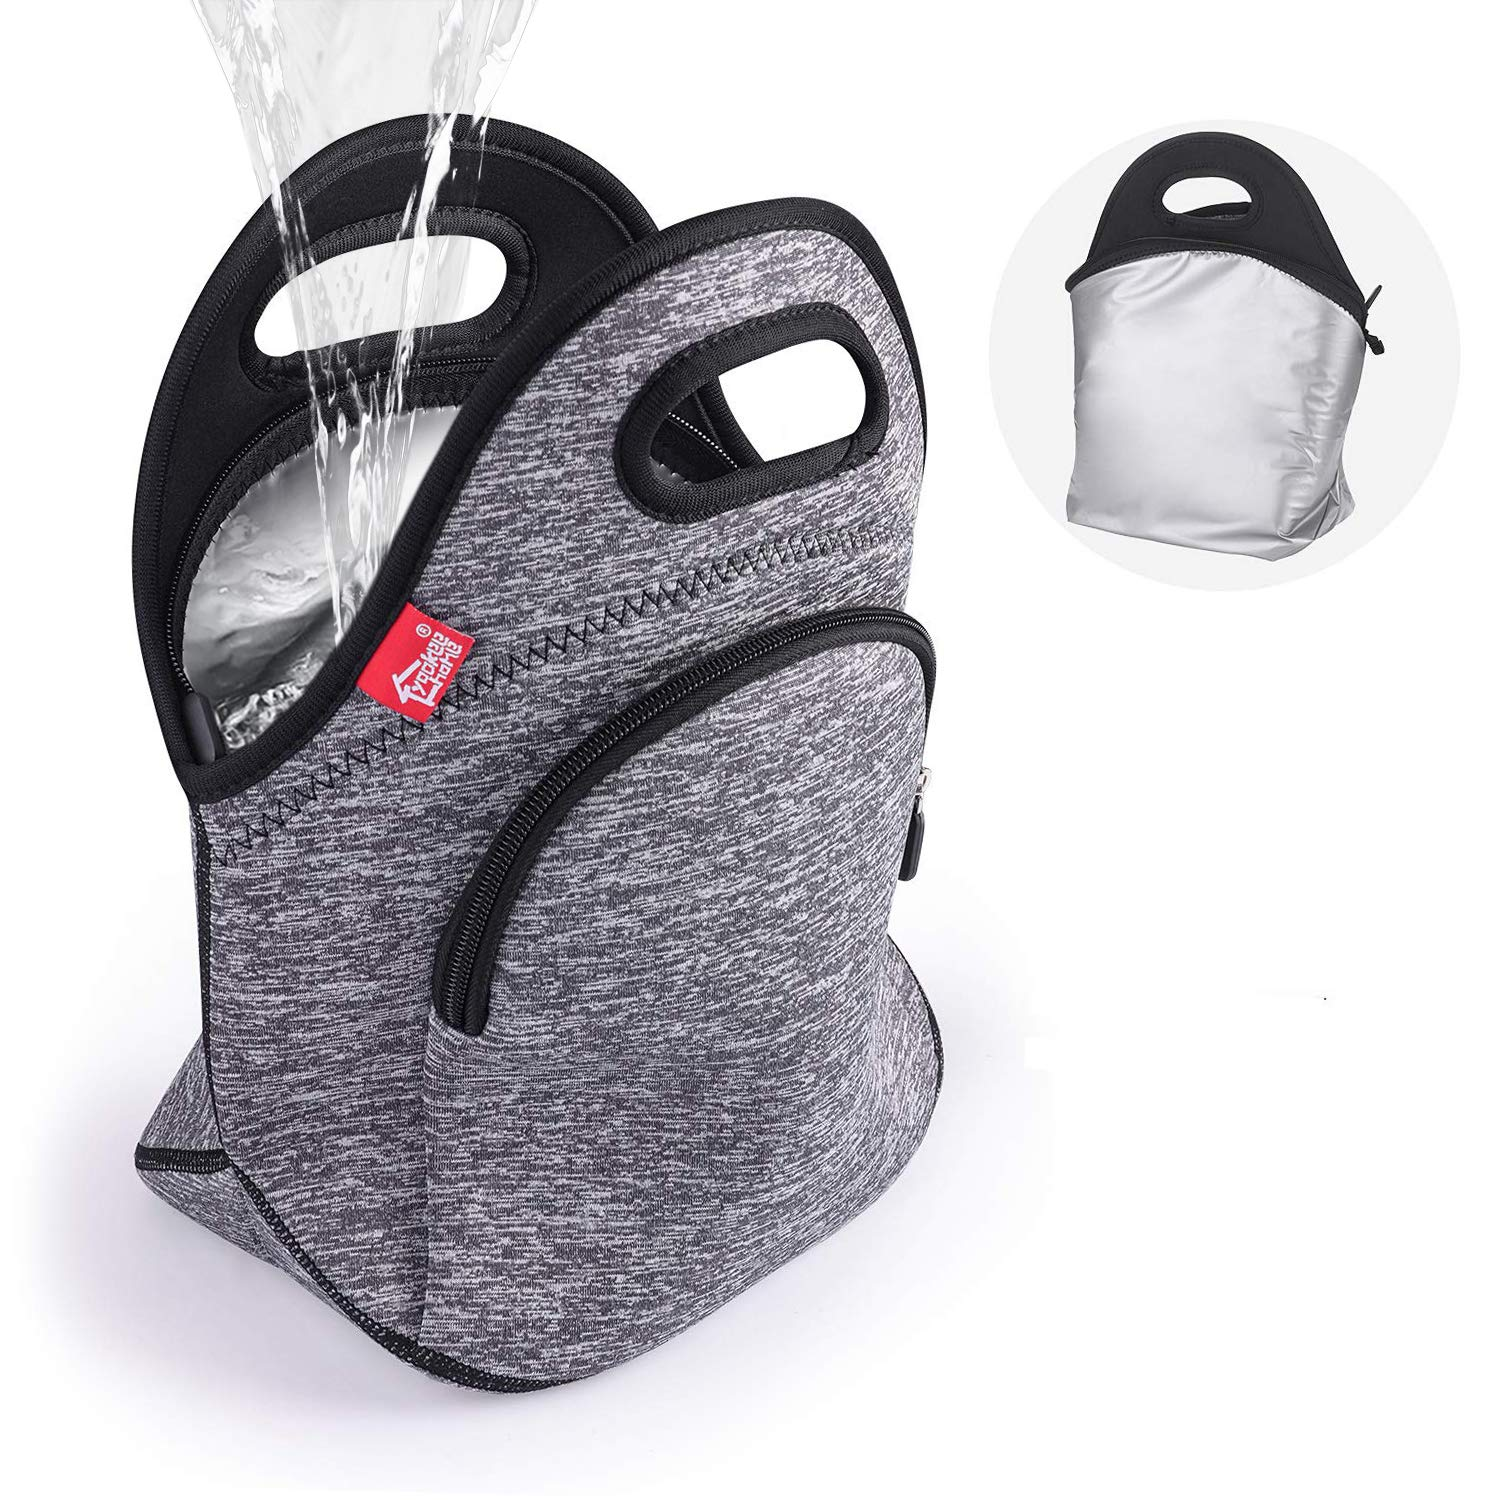 Waterproof Insulated Lunch Bag Grey Lunch Bags for Women and Men Reusable thermal Neoprene lunch cooler tote with Big Pockets by yookee home